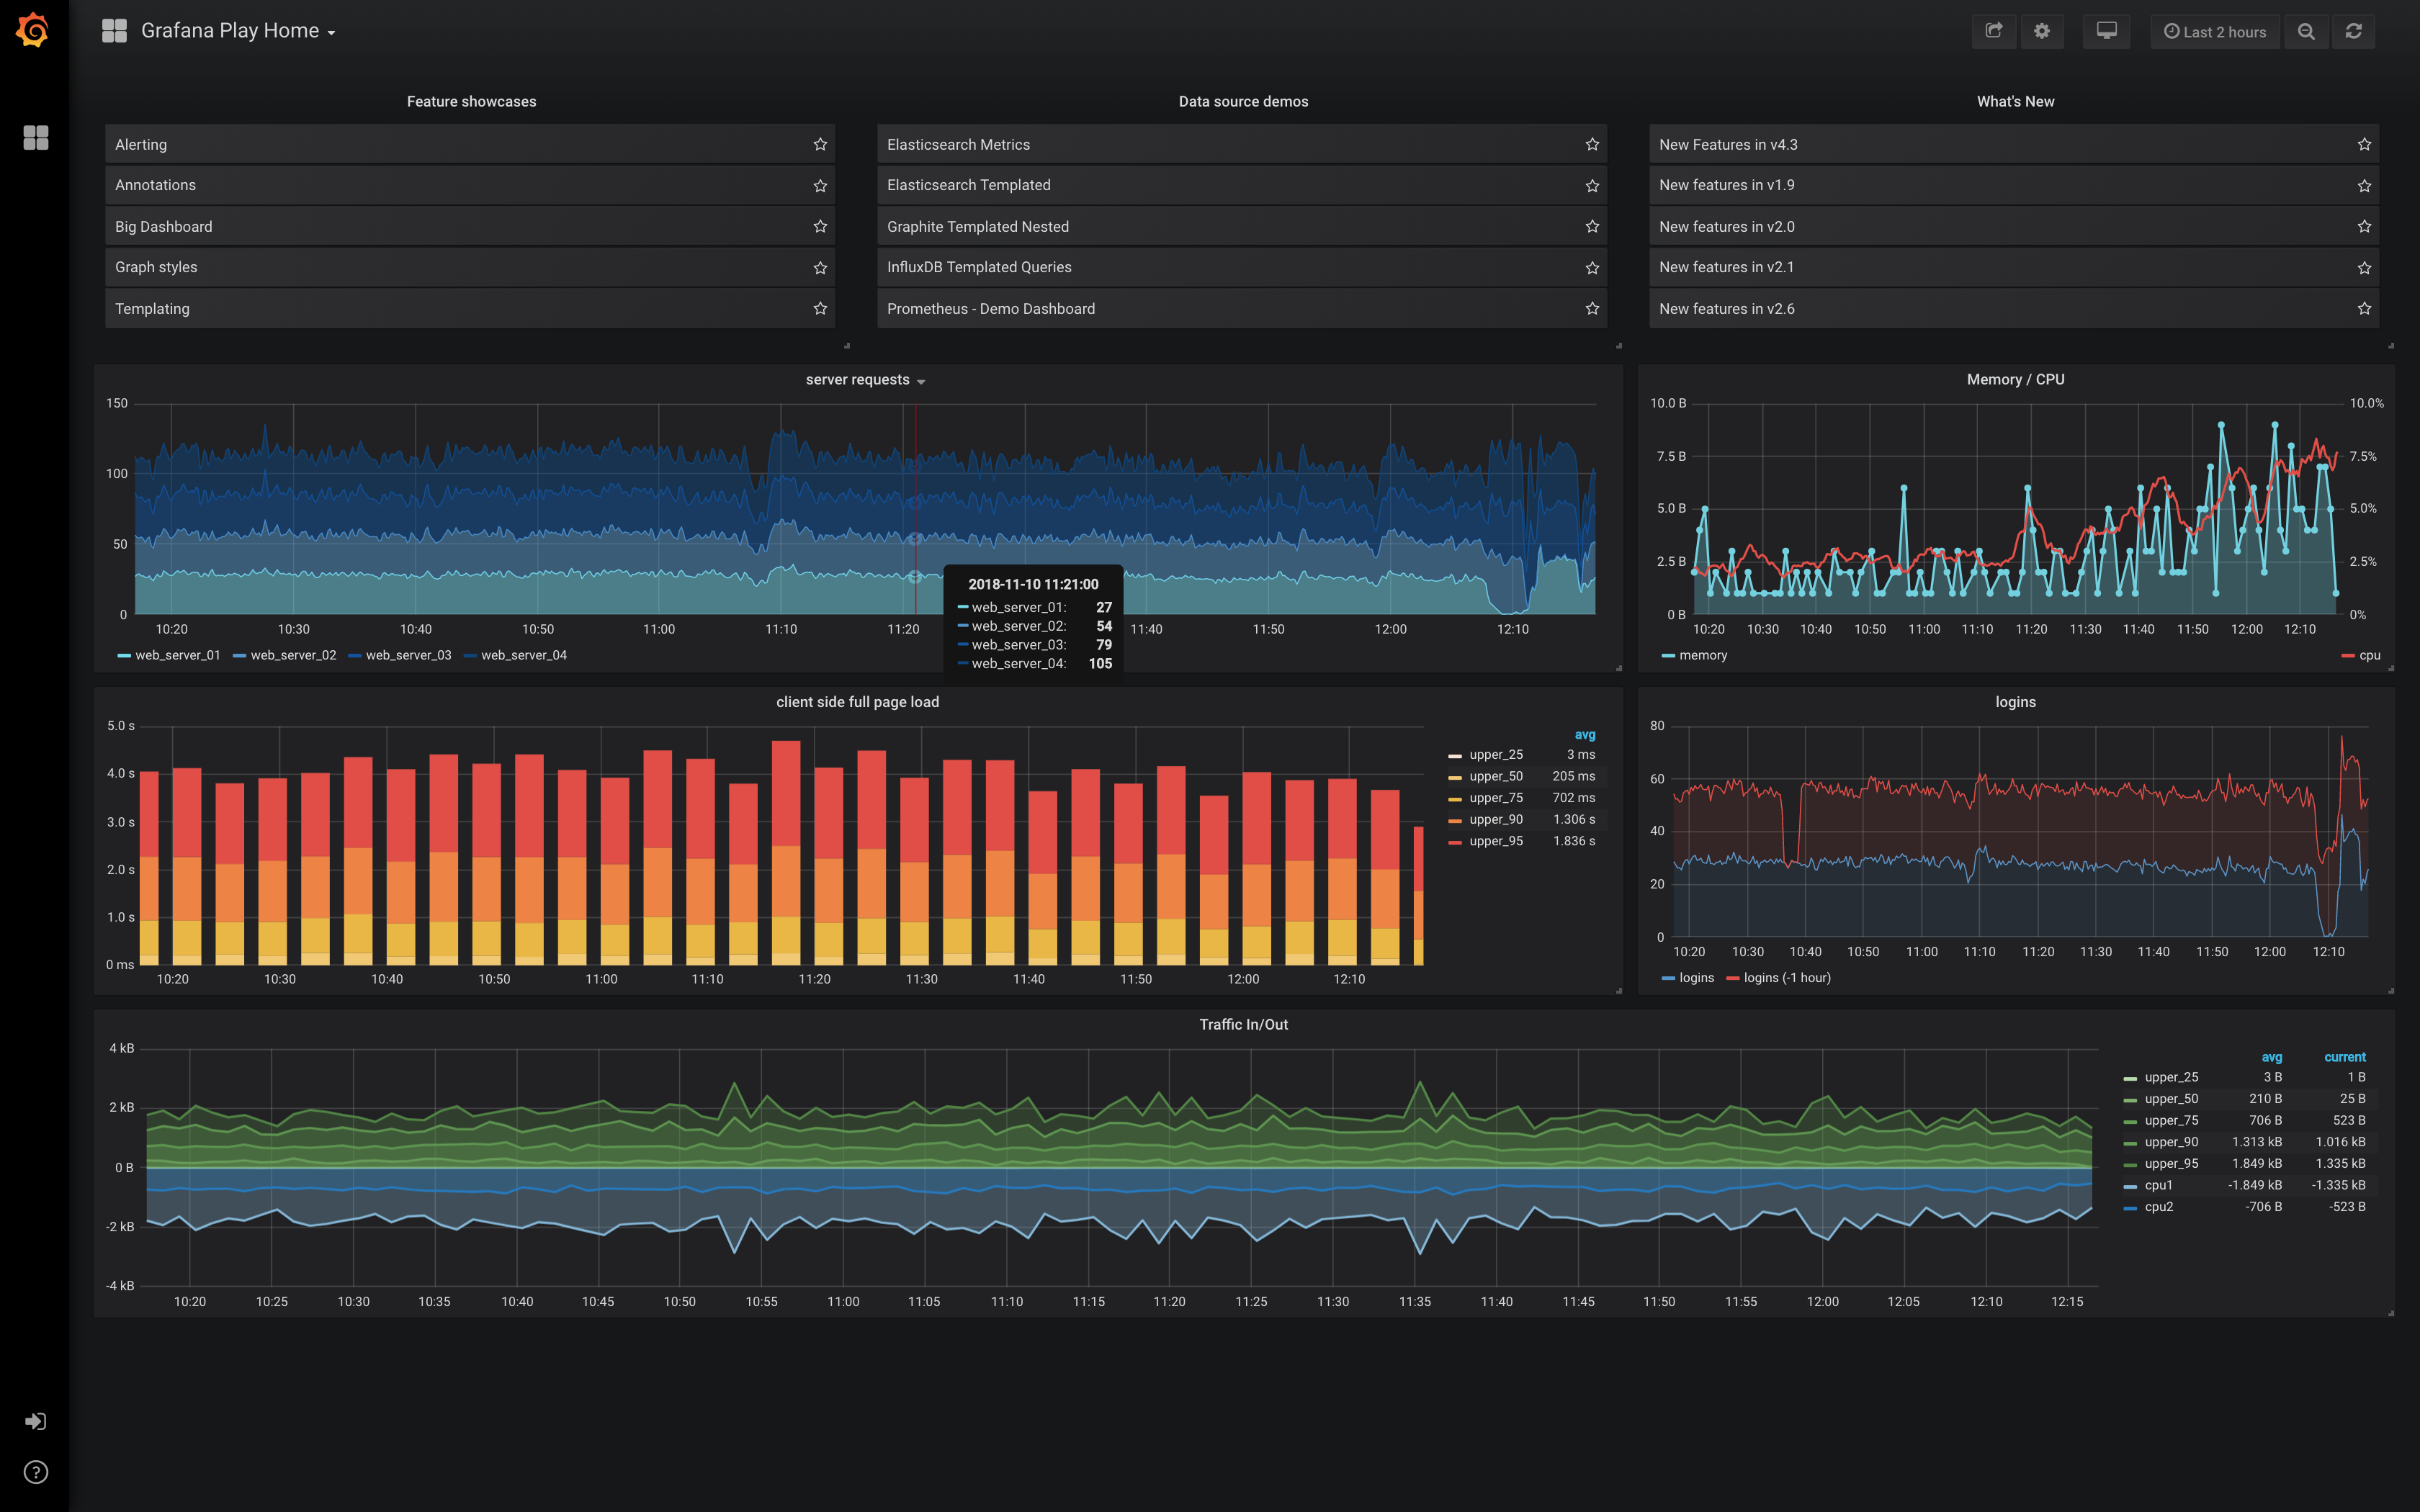 [Grafana tip] Promoting or duplicating dashboards between organizations for dev and prod instances